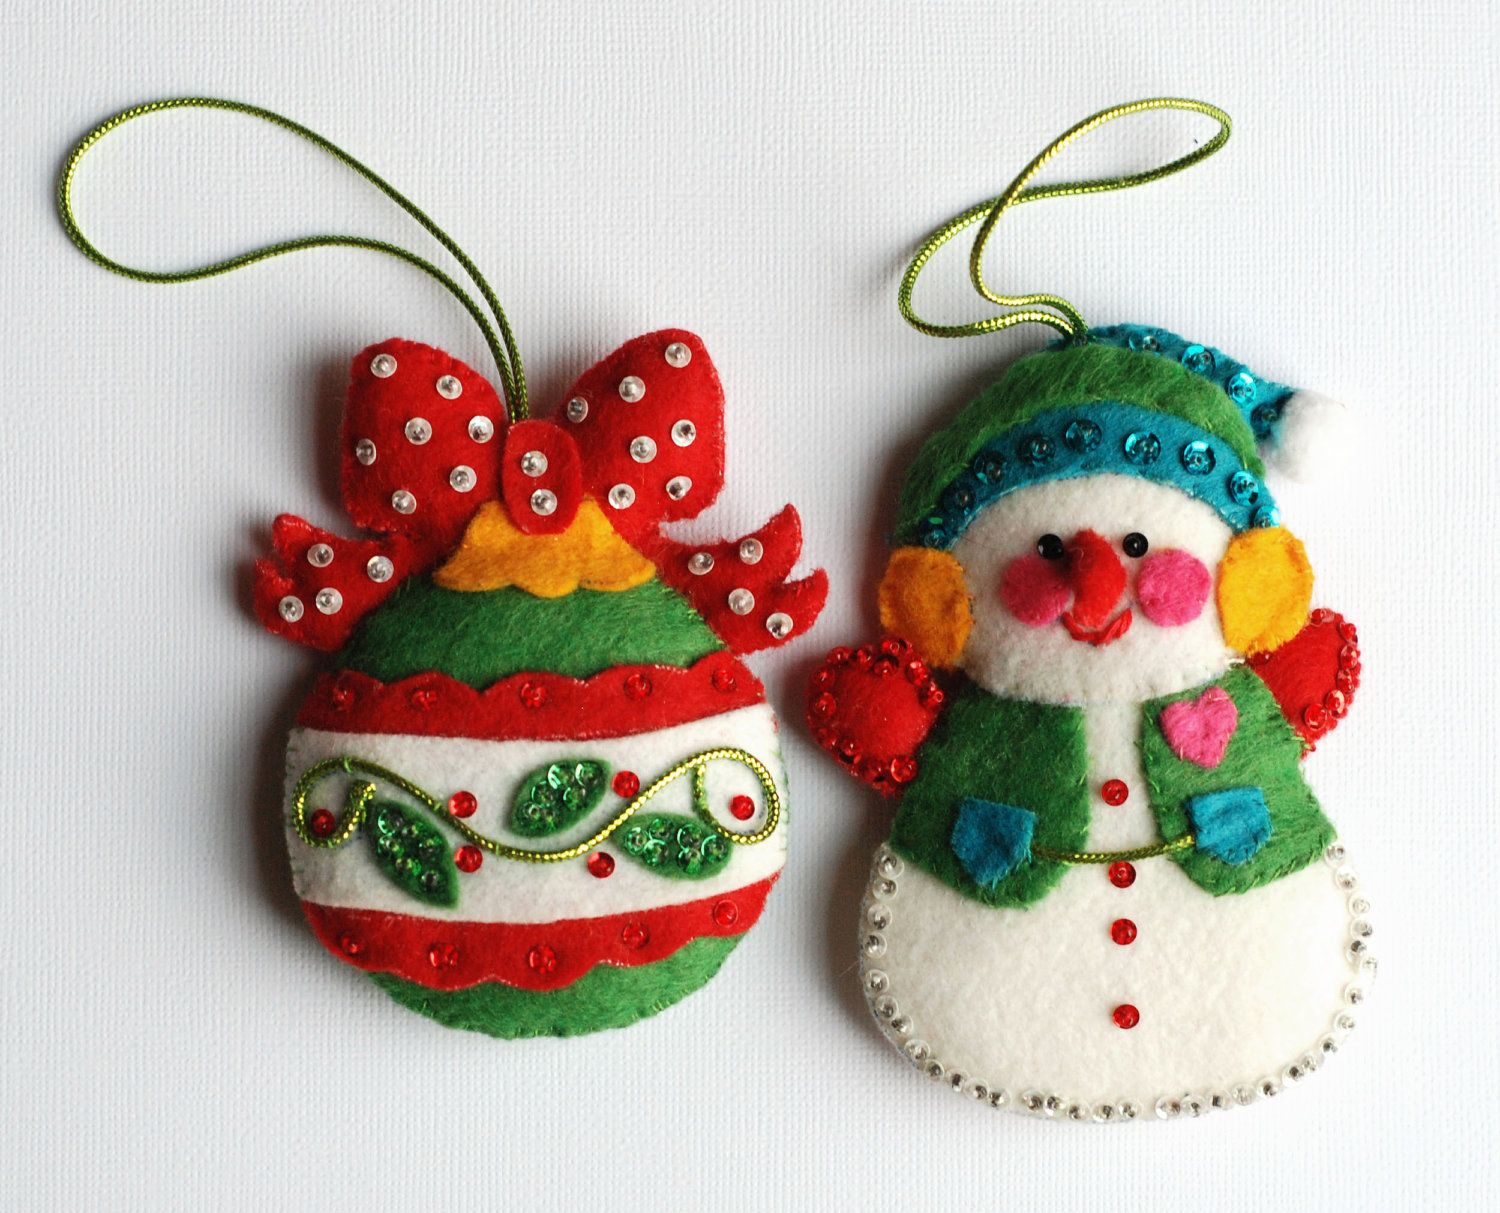 Christmas felt ornaments - Vintage Felt Christmas Ornaments With Sequins